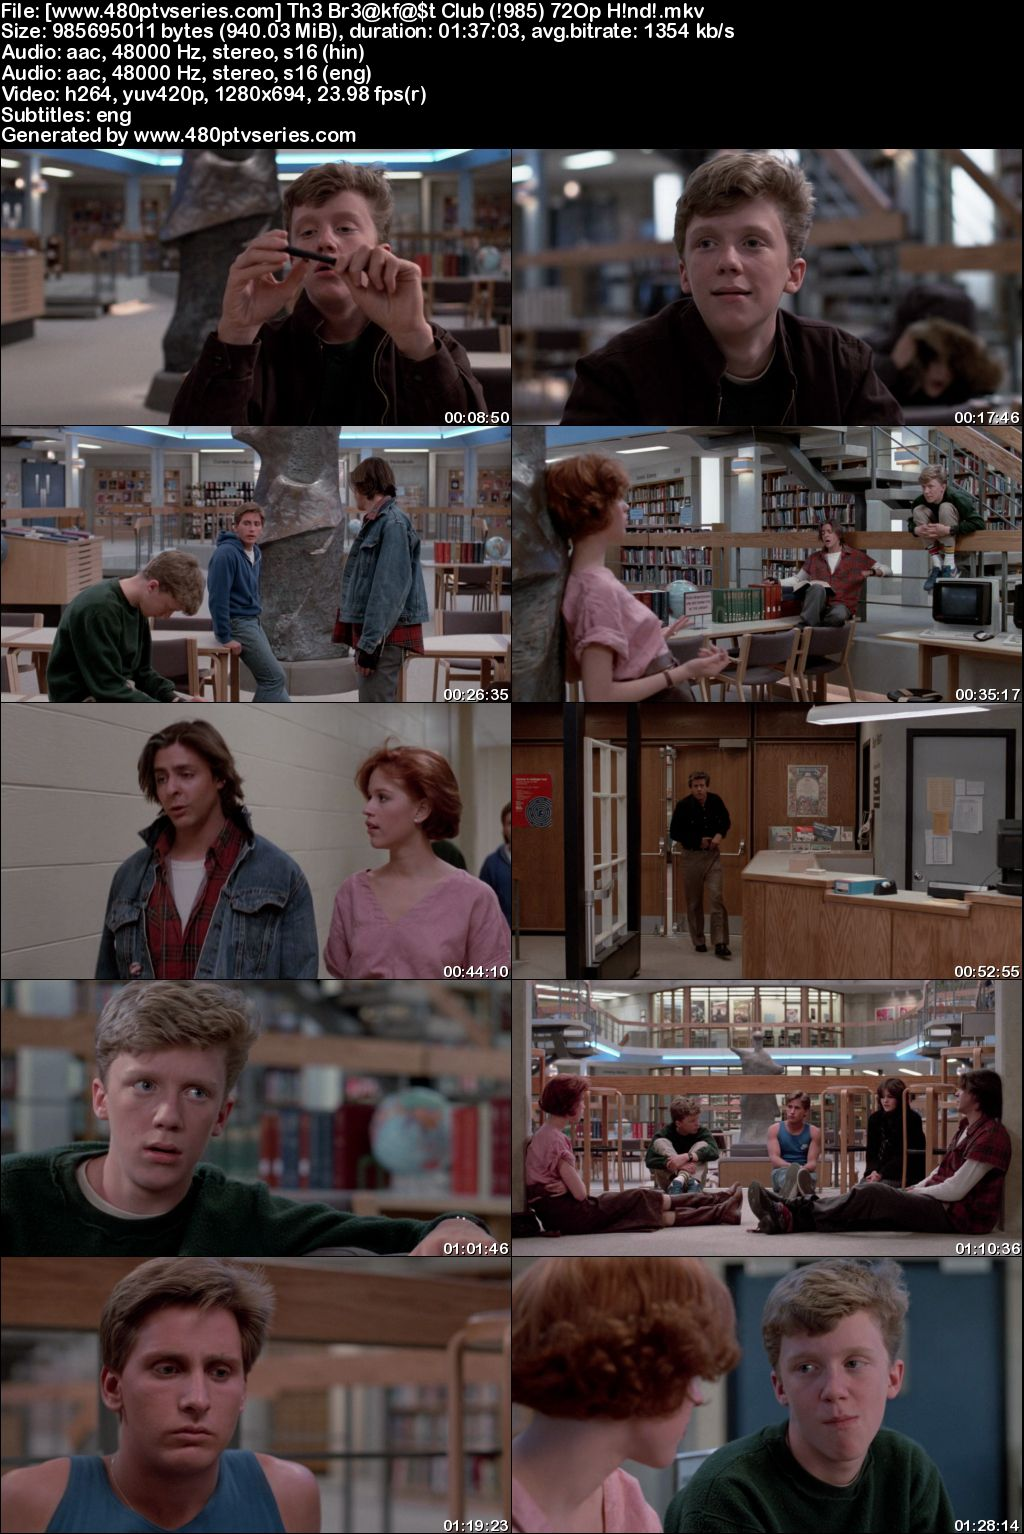 Watch Online Free The Breakfast Club (1985) Full Hindi Dual Audio Movie Download 480p 720p Bluray